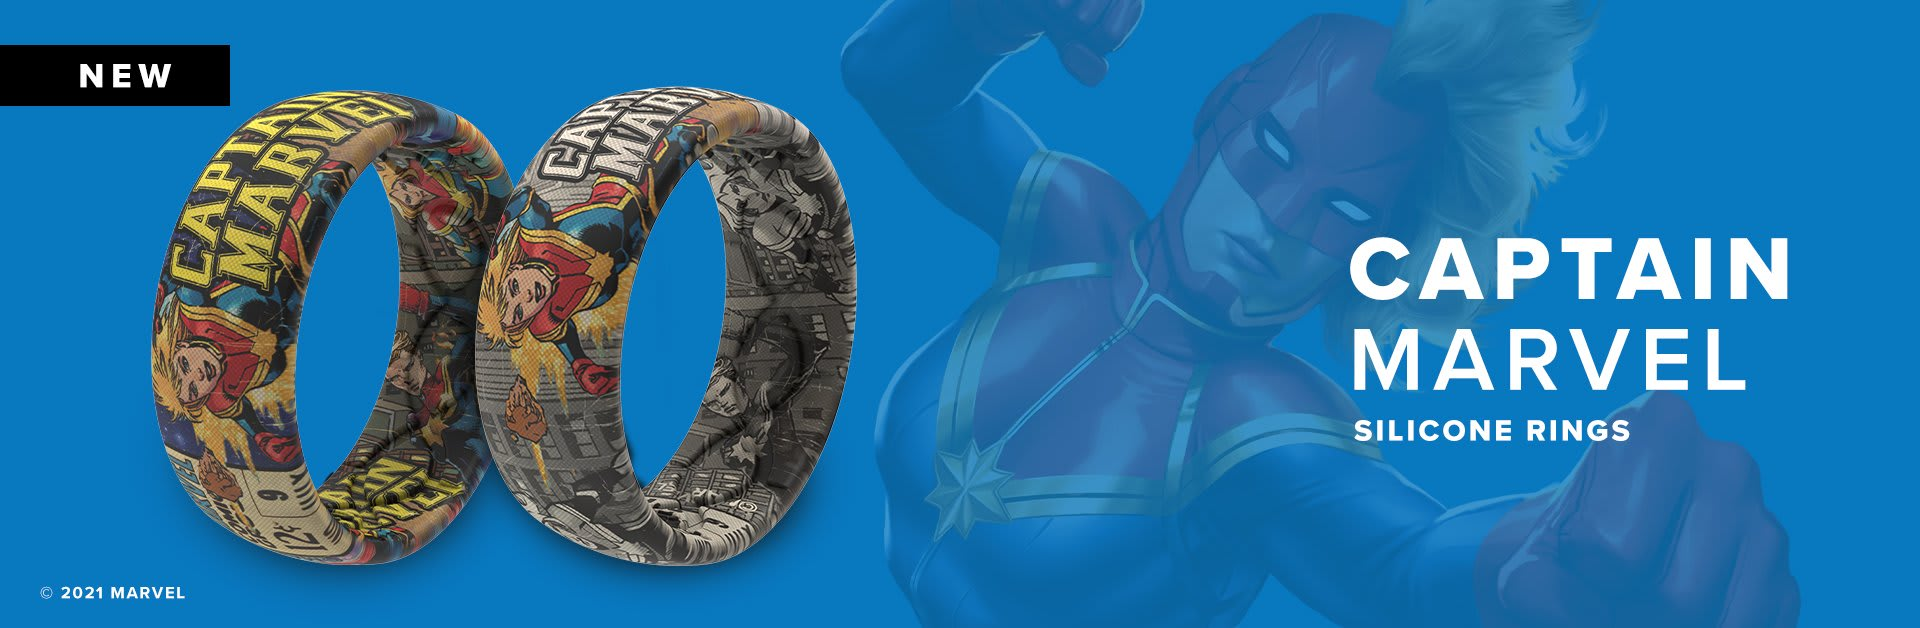 Captain Marvel Silicone Rings